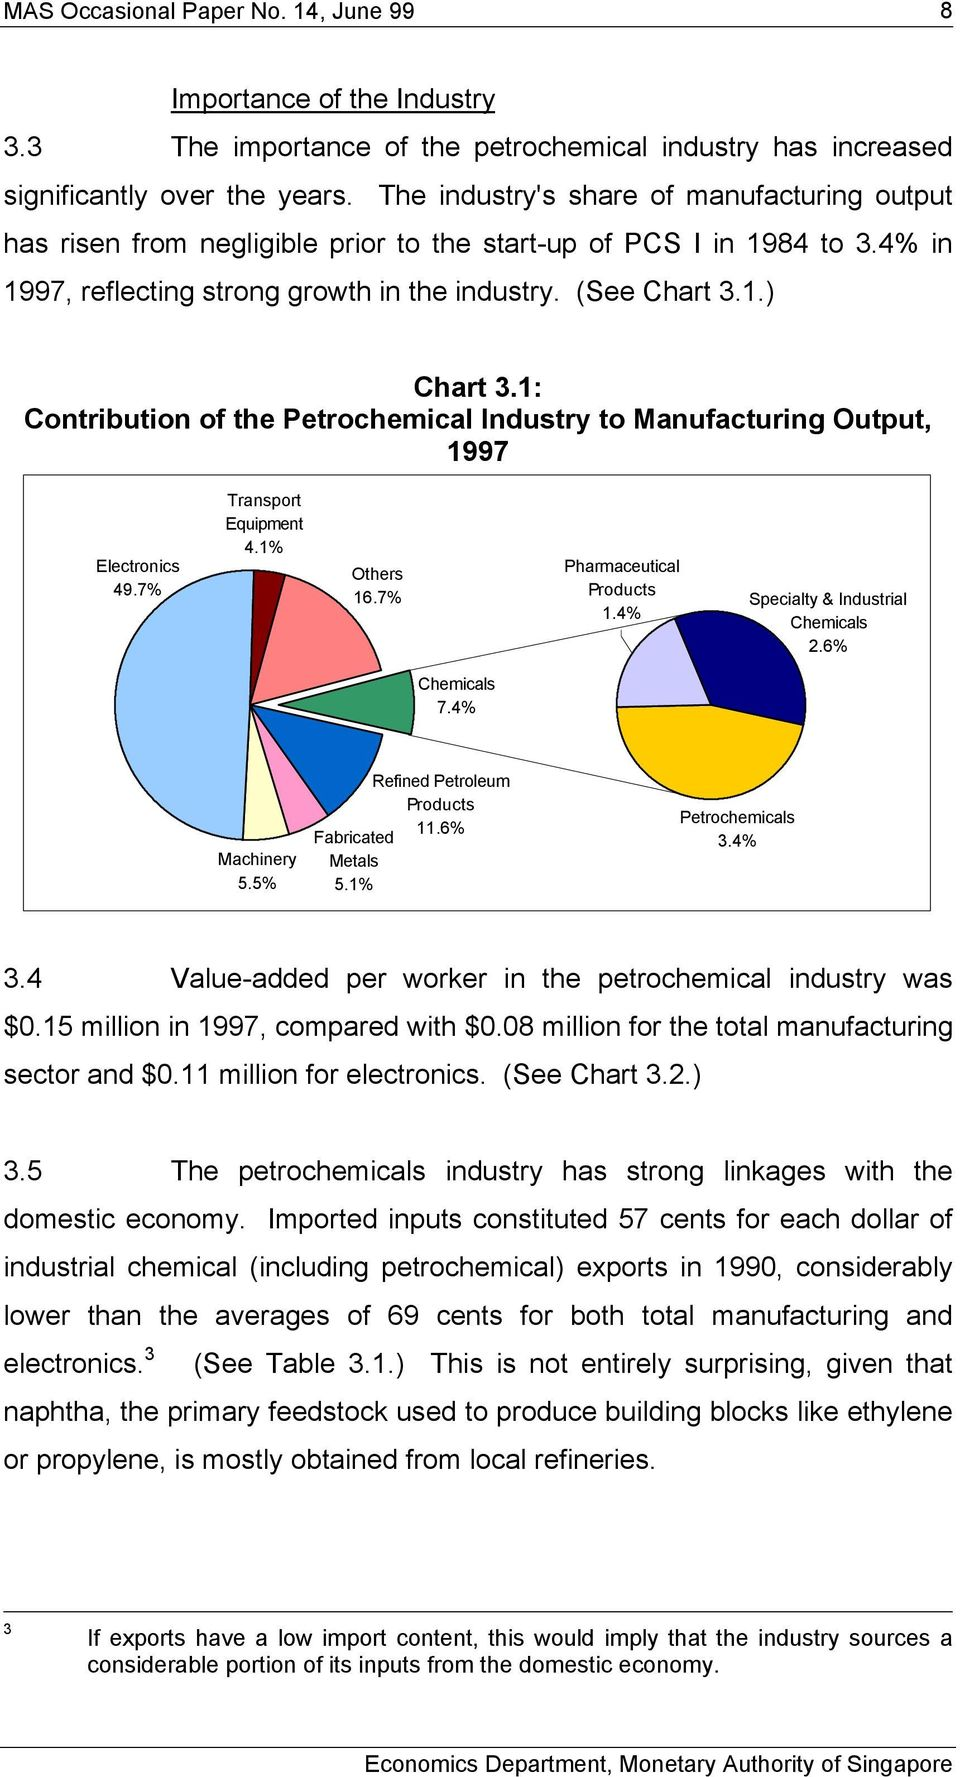 The Petrochemical Industry in Singapore - PDF